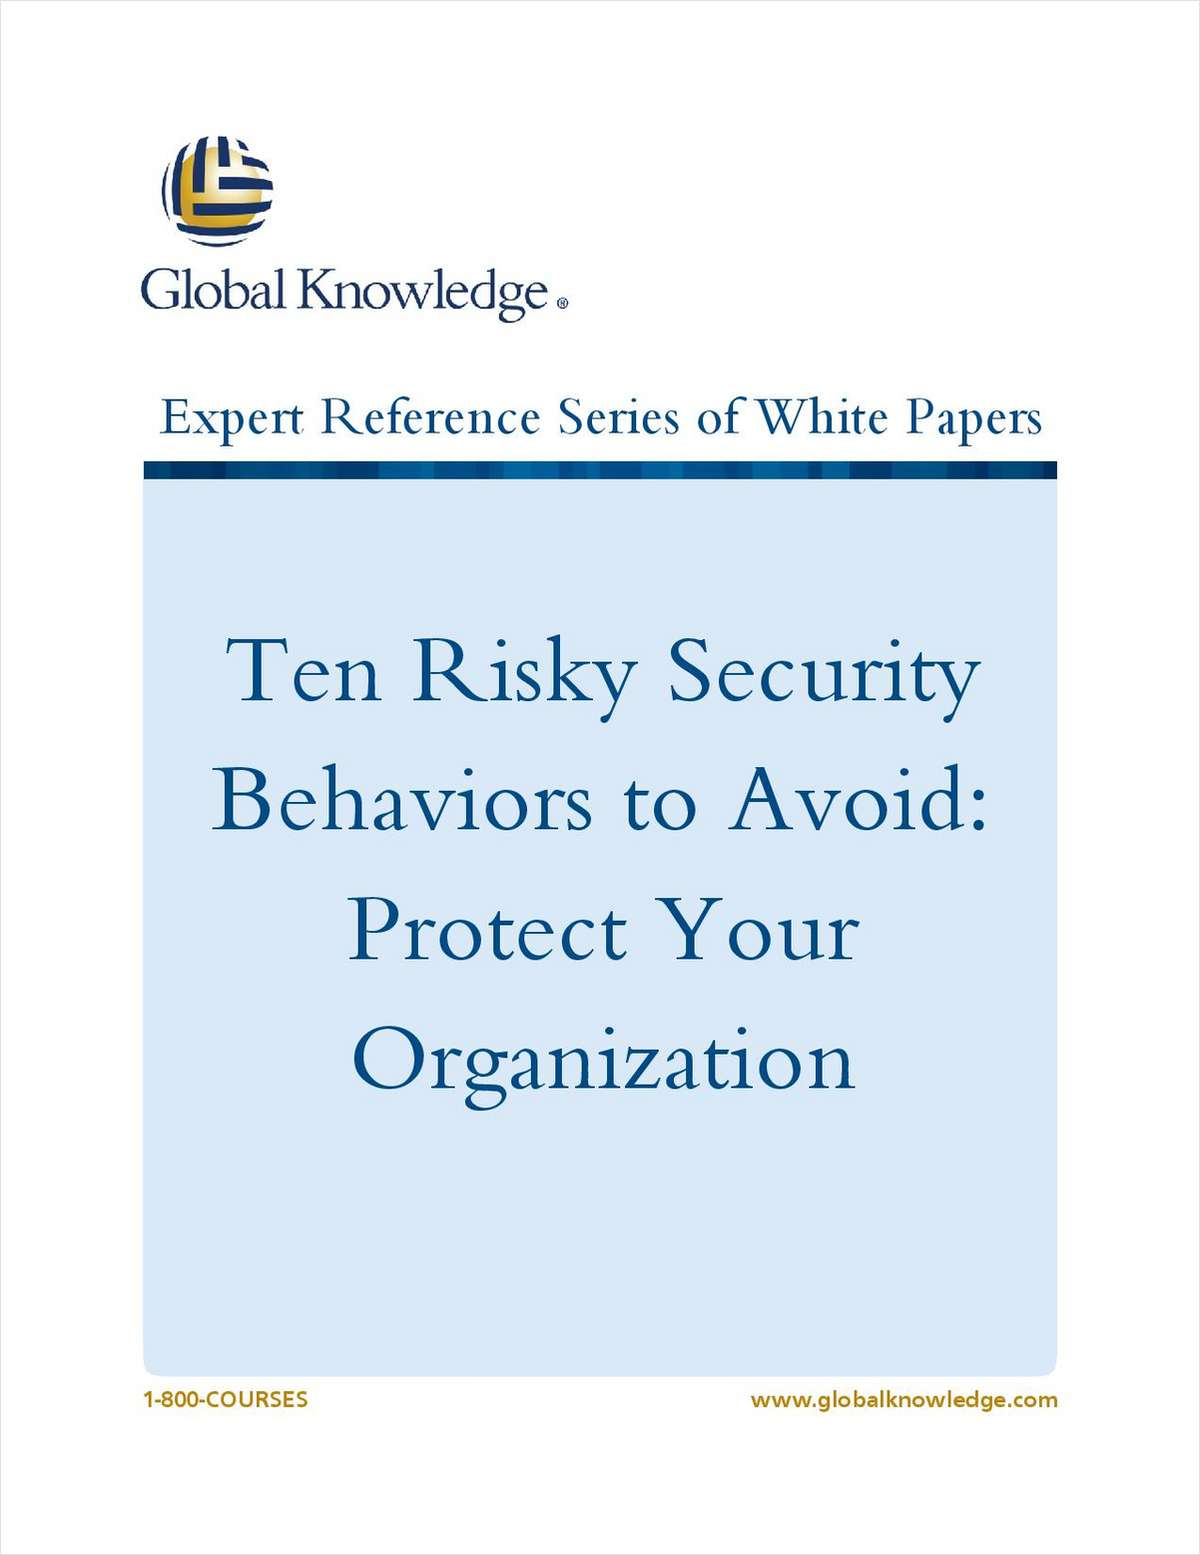 Ten Risky Security Behaviors to Avoid: Protect Your Organization